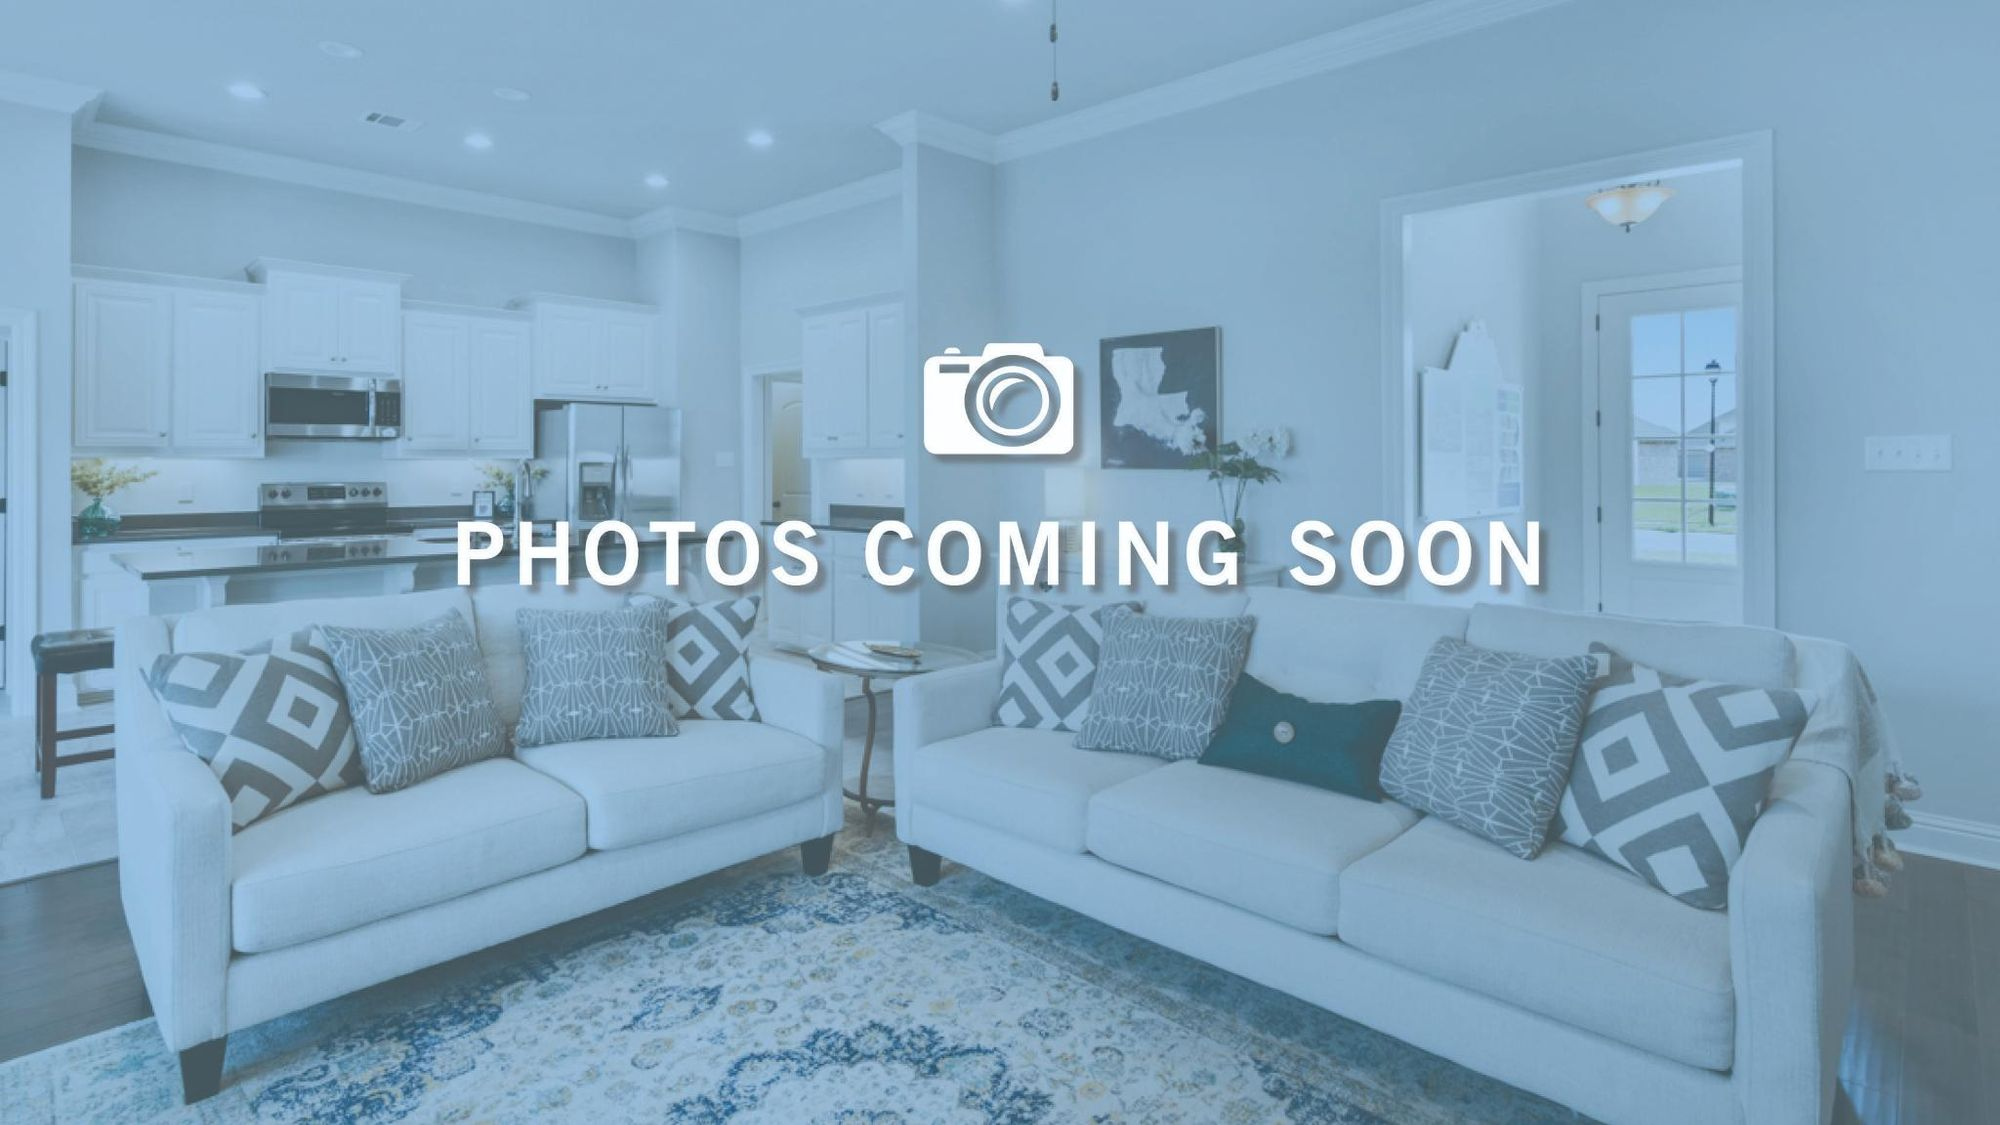 DSLD Homes - Photos Coming Soon